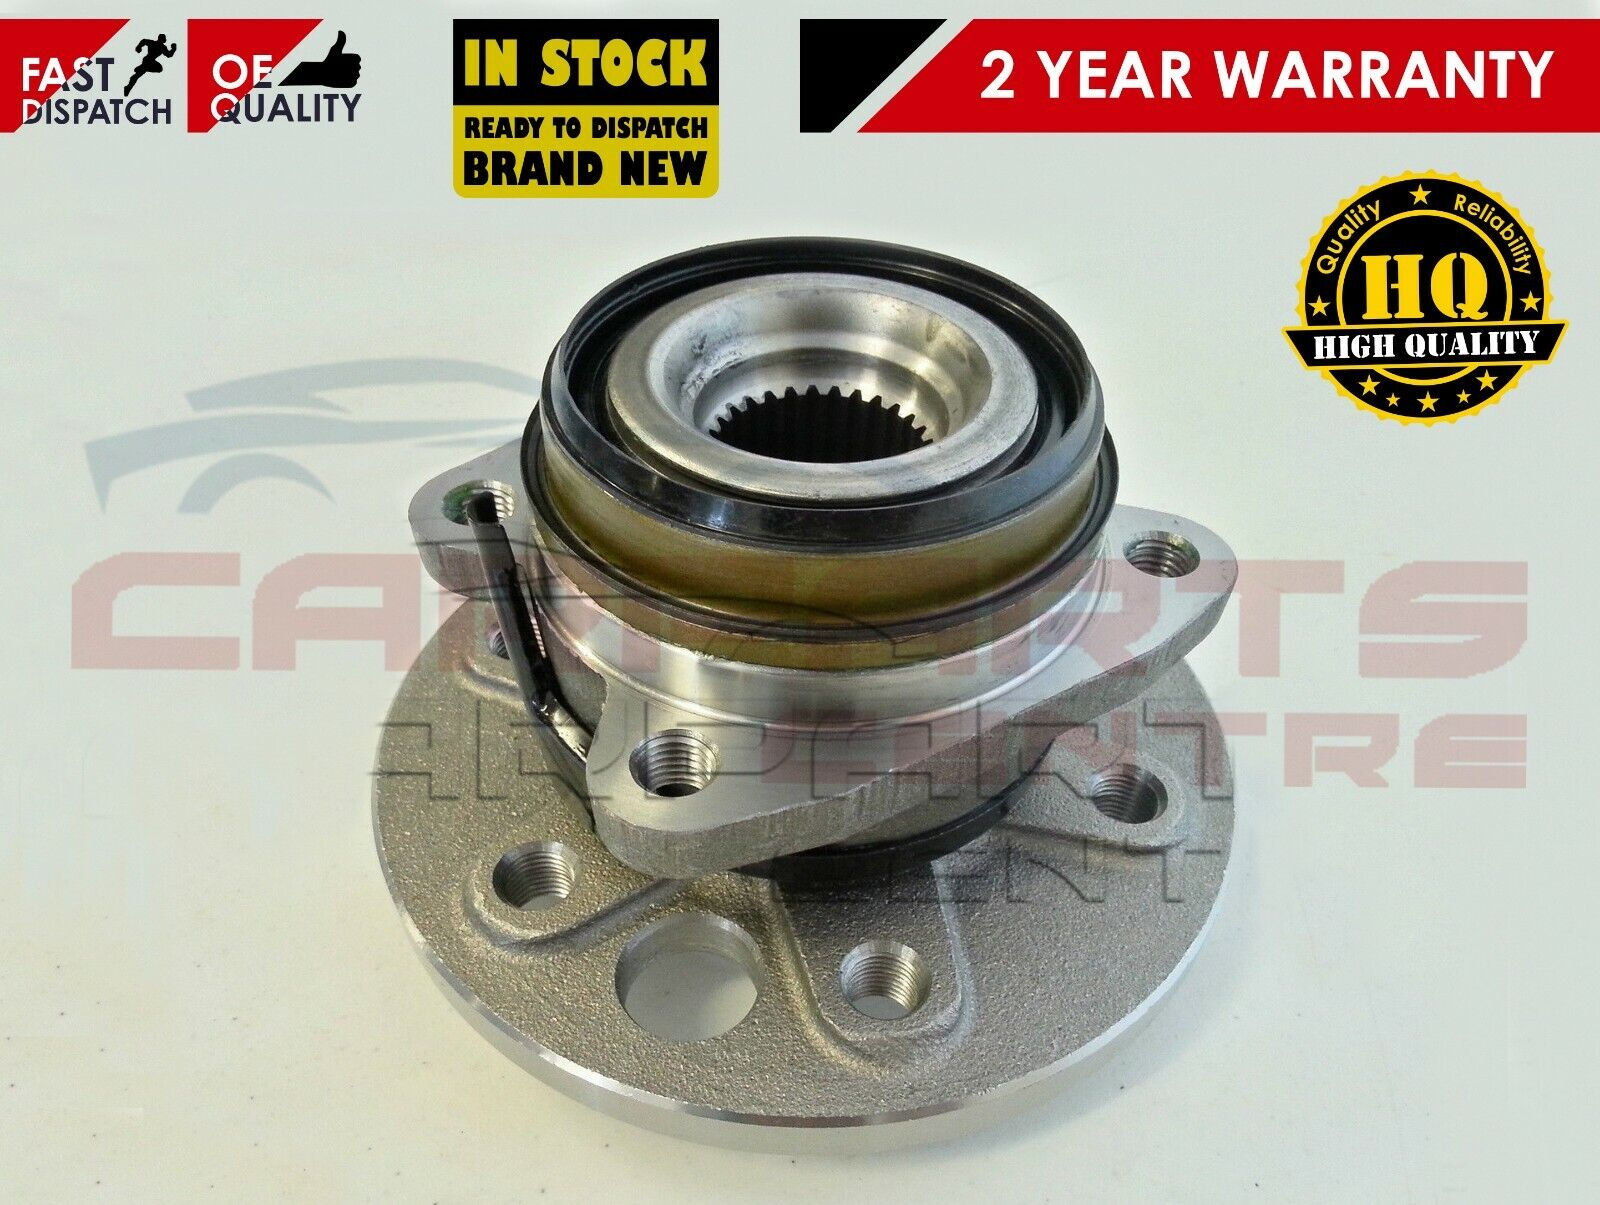 For JEEP CHEROKEE LIBERTY KJ 01/> FRONT RIGHT OS WHEEL HUB BEARING COMPLETE